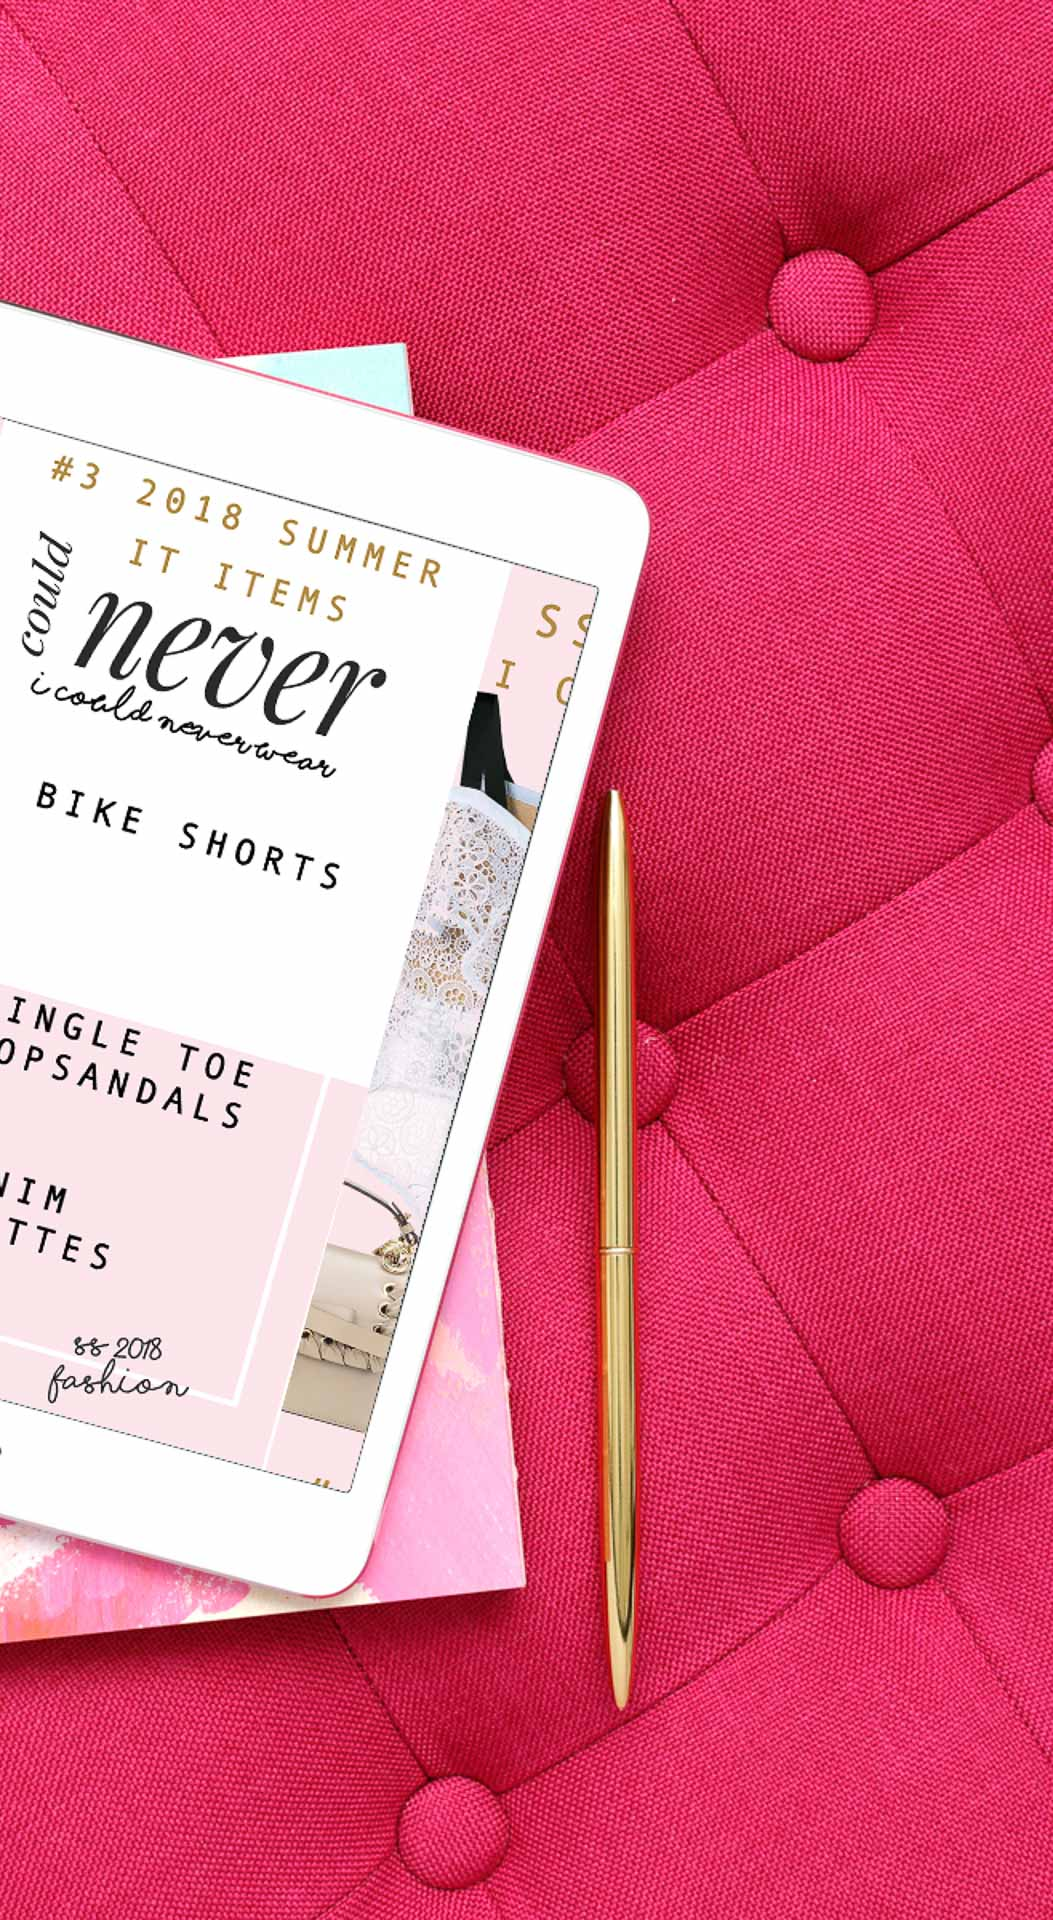 Fashion Blogger Veronika Lipar of Brunette from Wall Street sharing list of IT summer 2018 things she could never wear